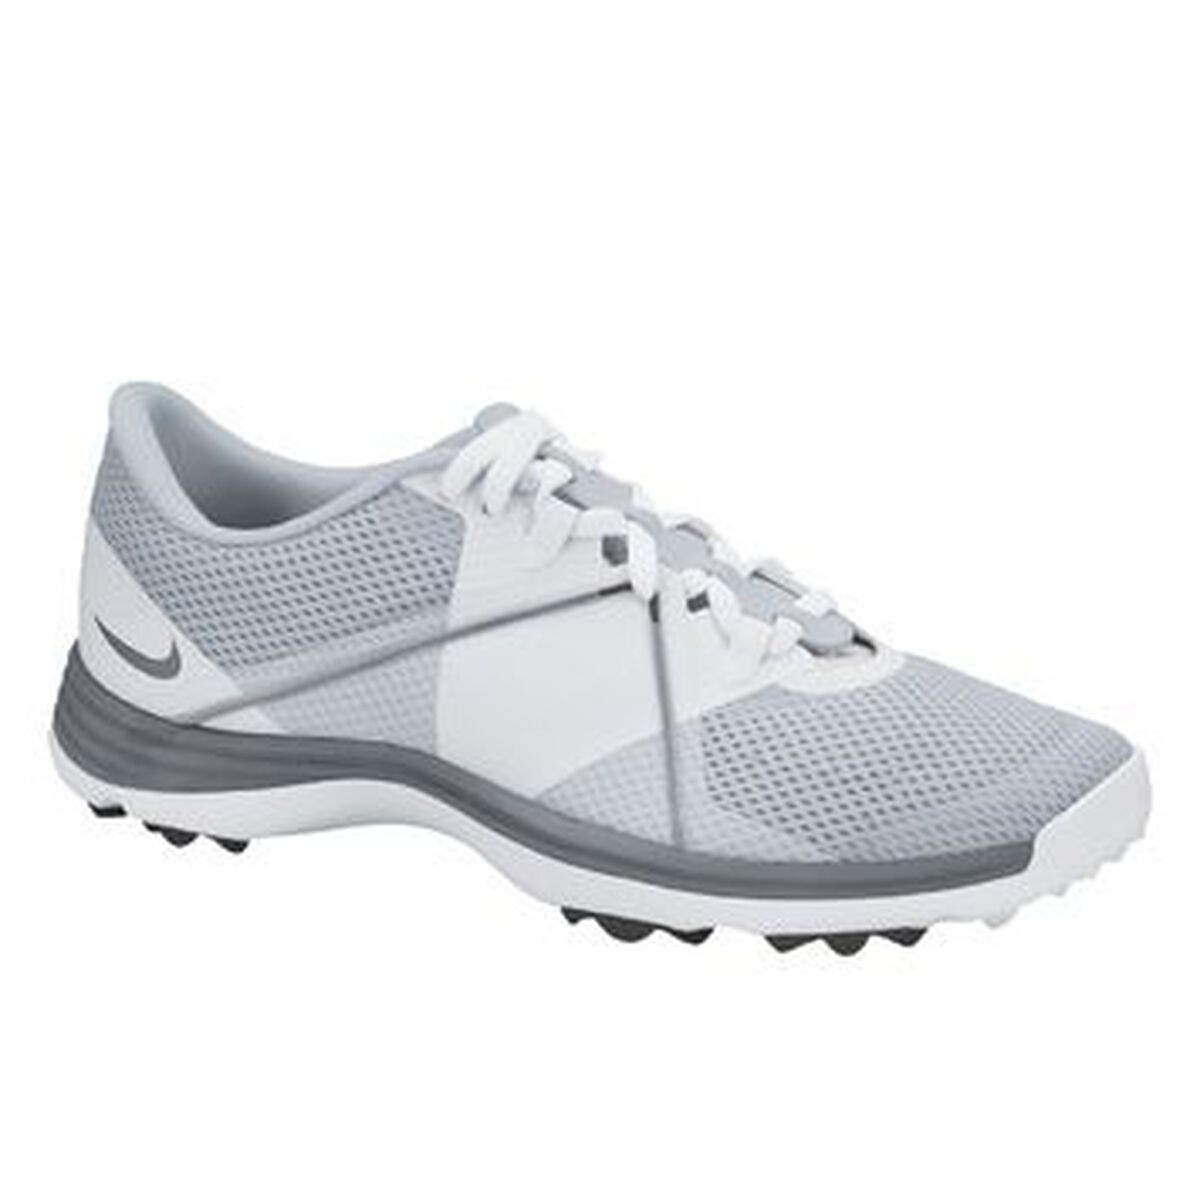 new arrival 1013e afd47 Nike Lunar Summer Lite Women  39 s Golf Shoe Zoom Image